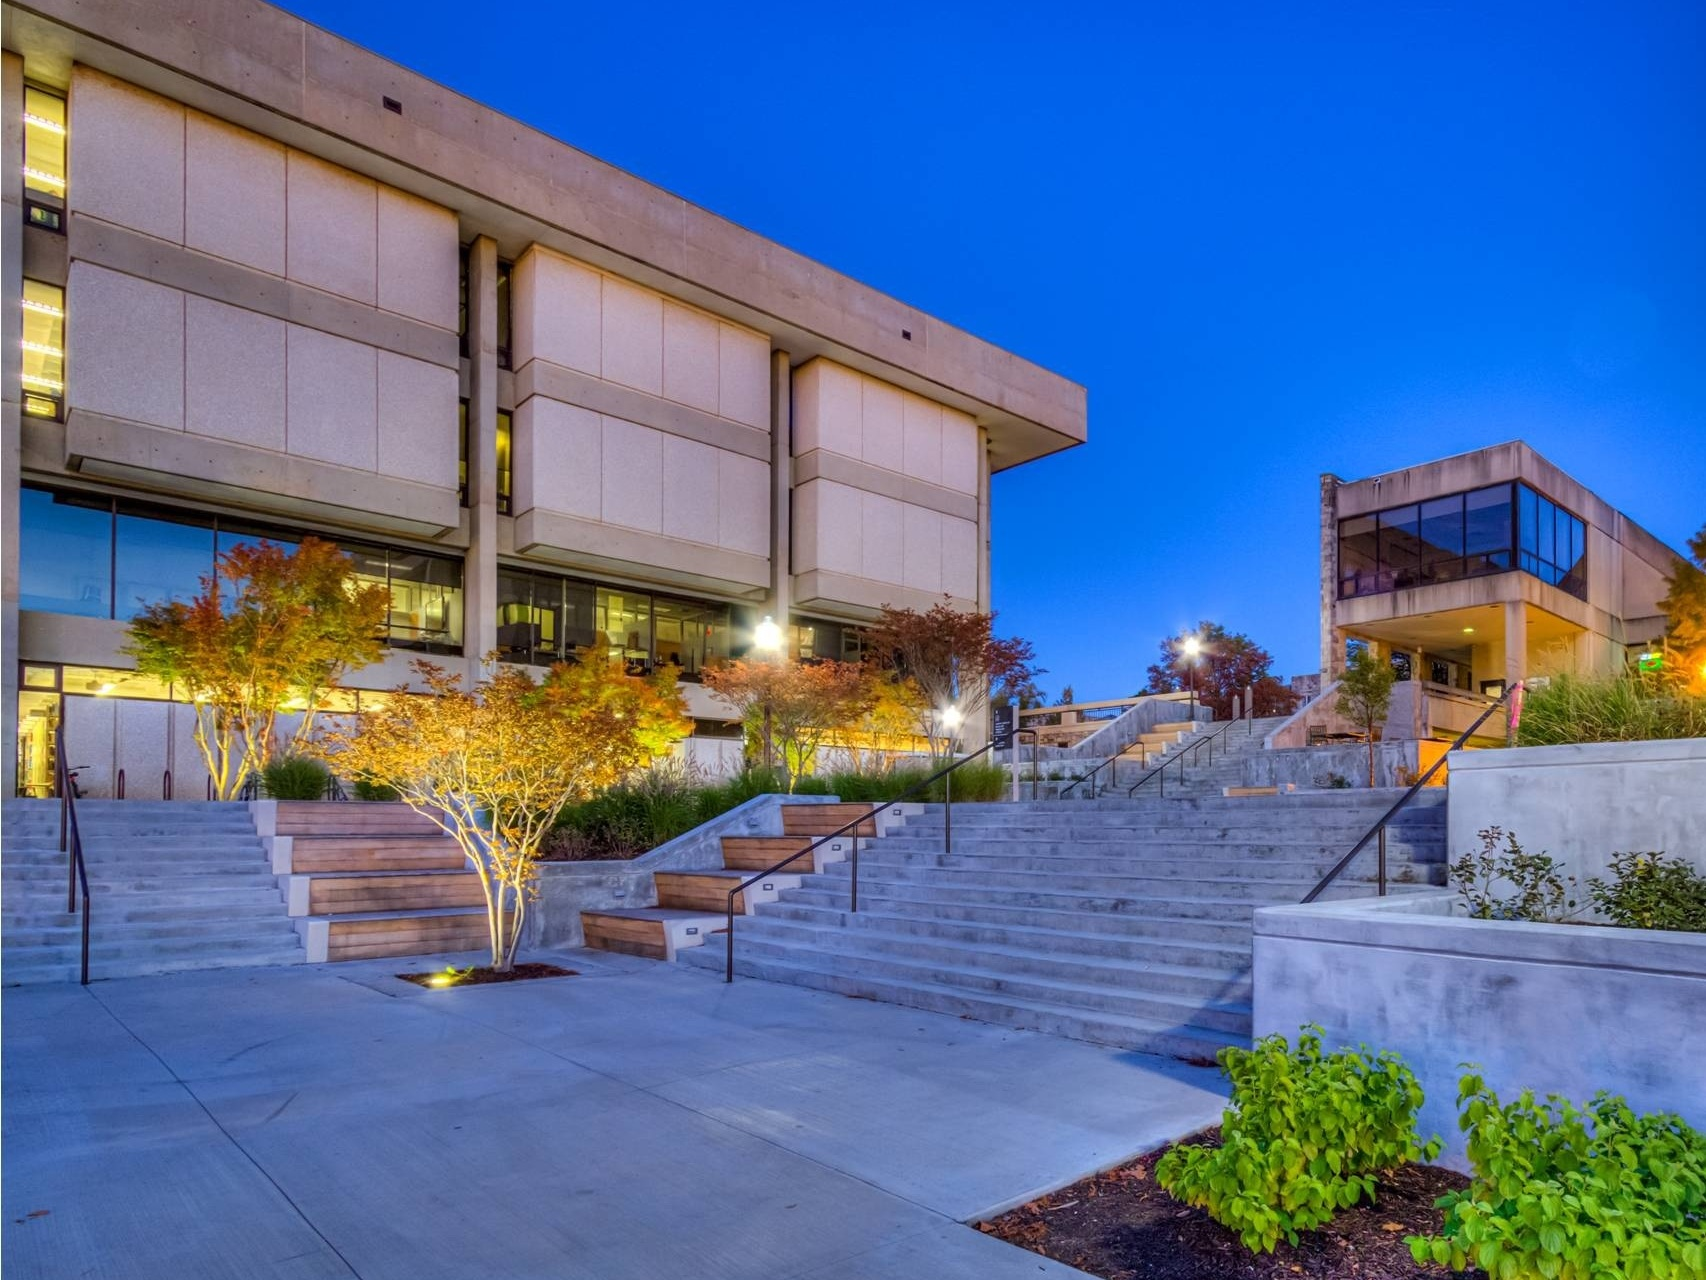 Virginia Tech Derring Stair Replacement by Hill Studio